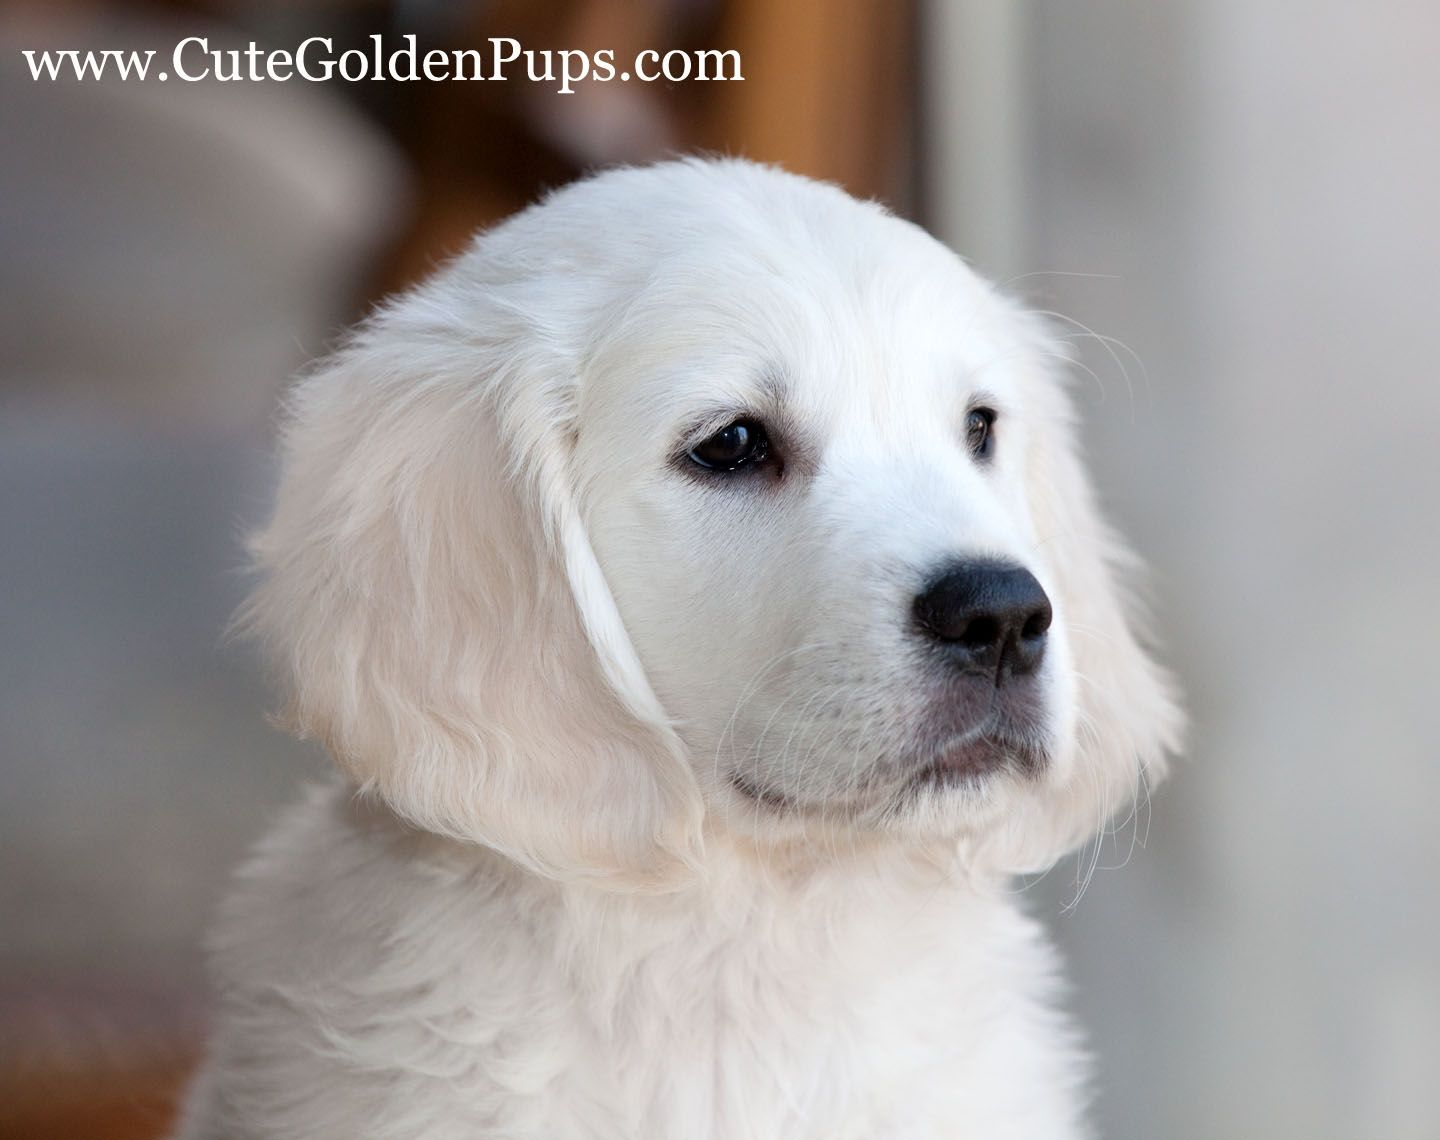 Pin By Jennifer Sperrazza On Puppies White Golden Retriever Puppy Golden Retriever White English Golden Retrievers